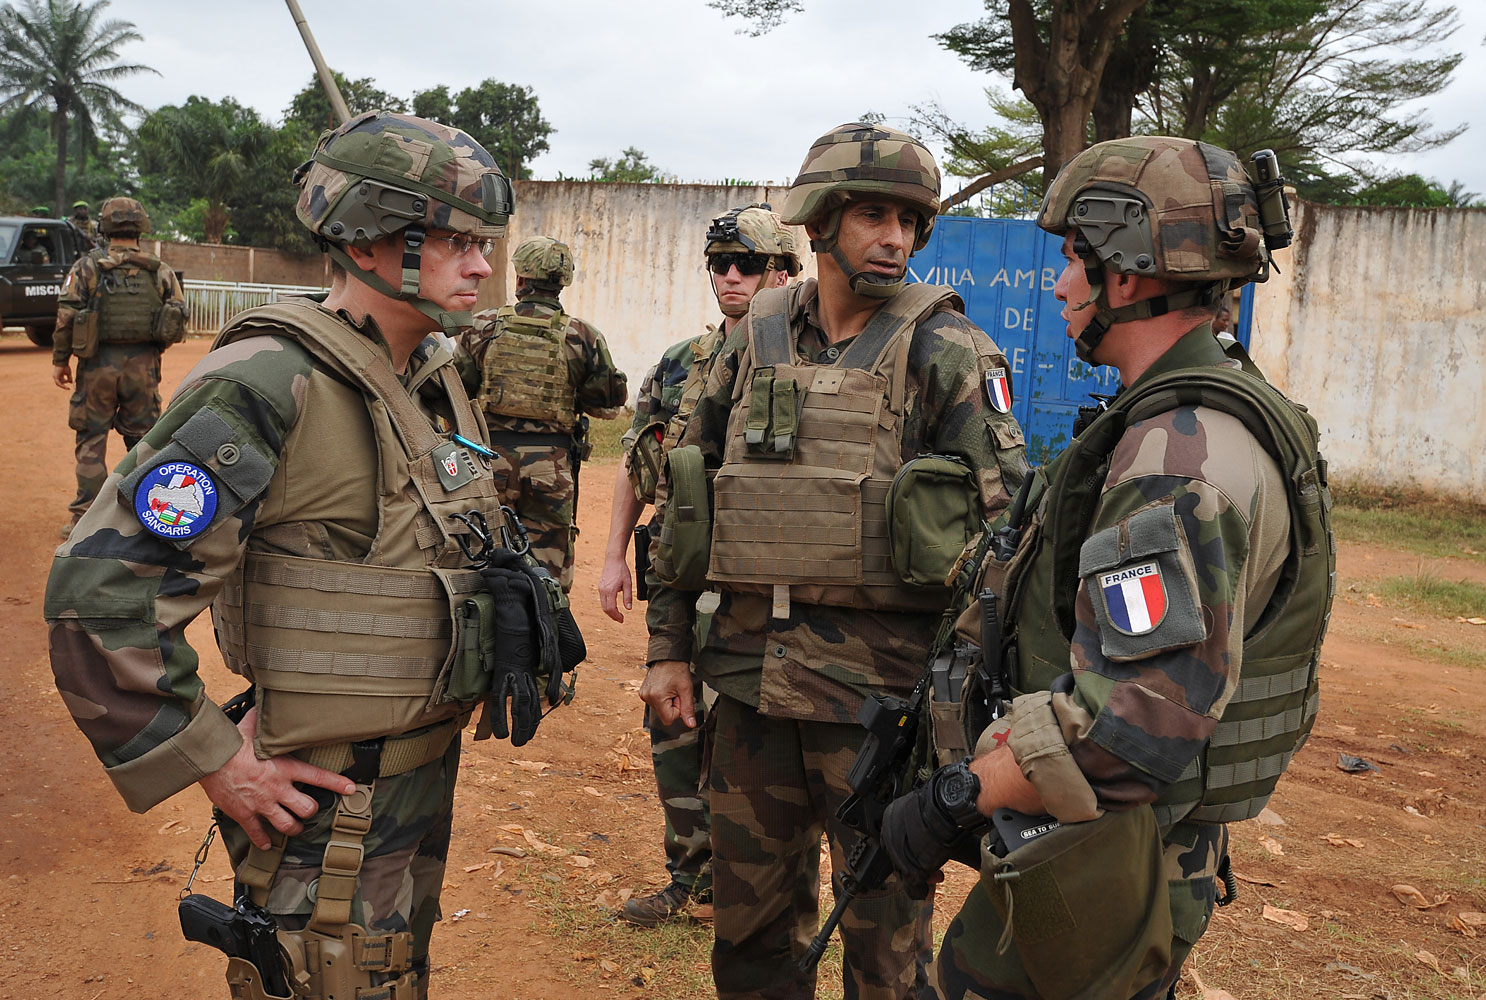 The commander of the French Sangaris operation in Central Africa Francisco Soriano (C) speaks with two soldier in the PK4 district of Bangui on February 27, 2014. The EU has announced that its proposed contingent of troops will soon join African Union and French troops currently deployed in the country.